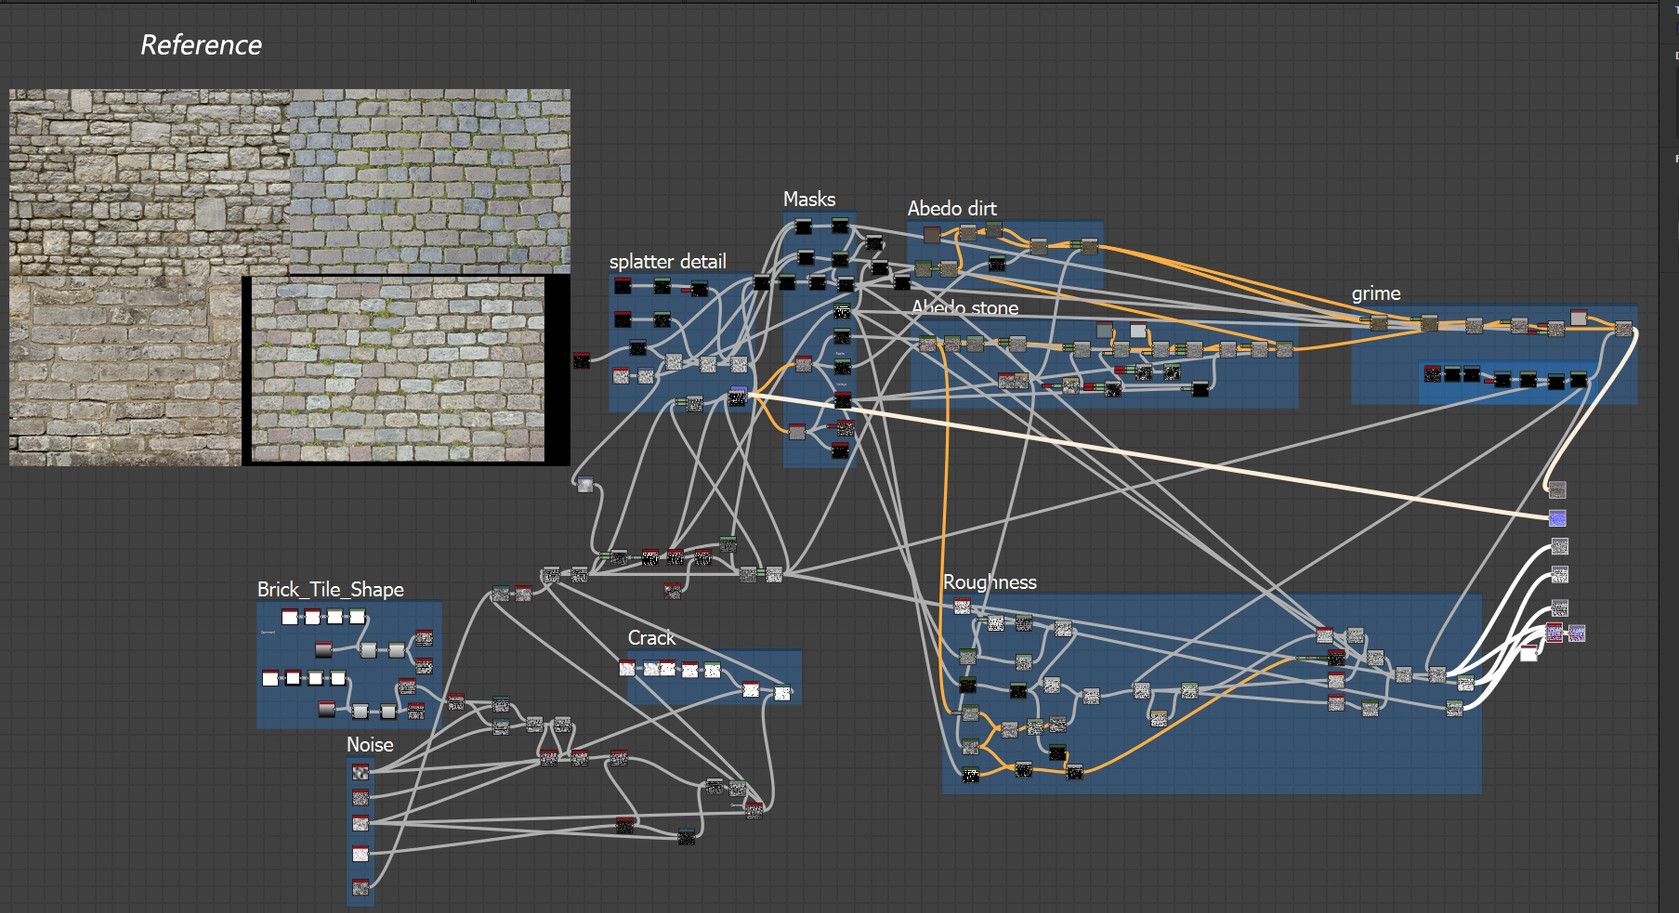 Cabble_Wall_blueprint and Reference